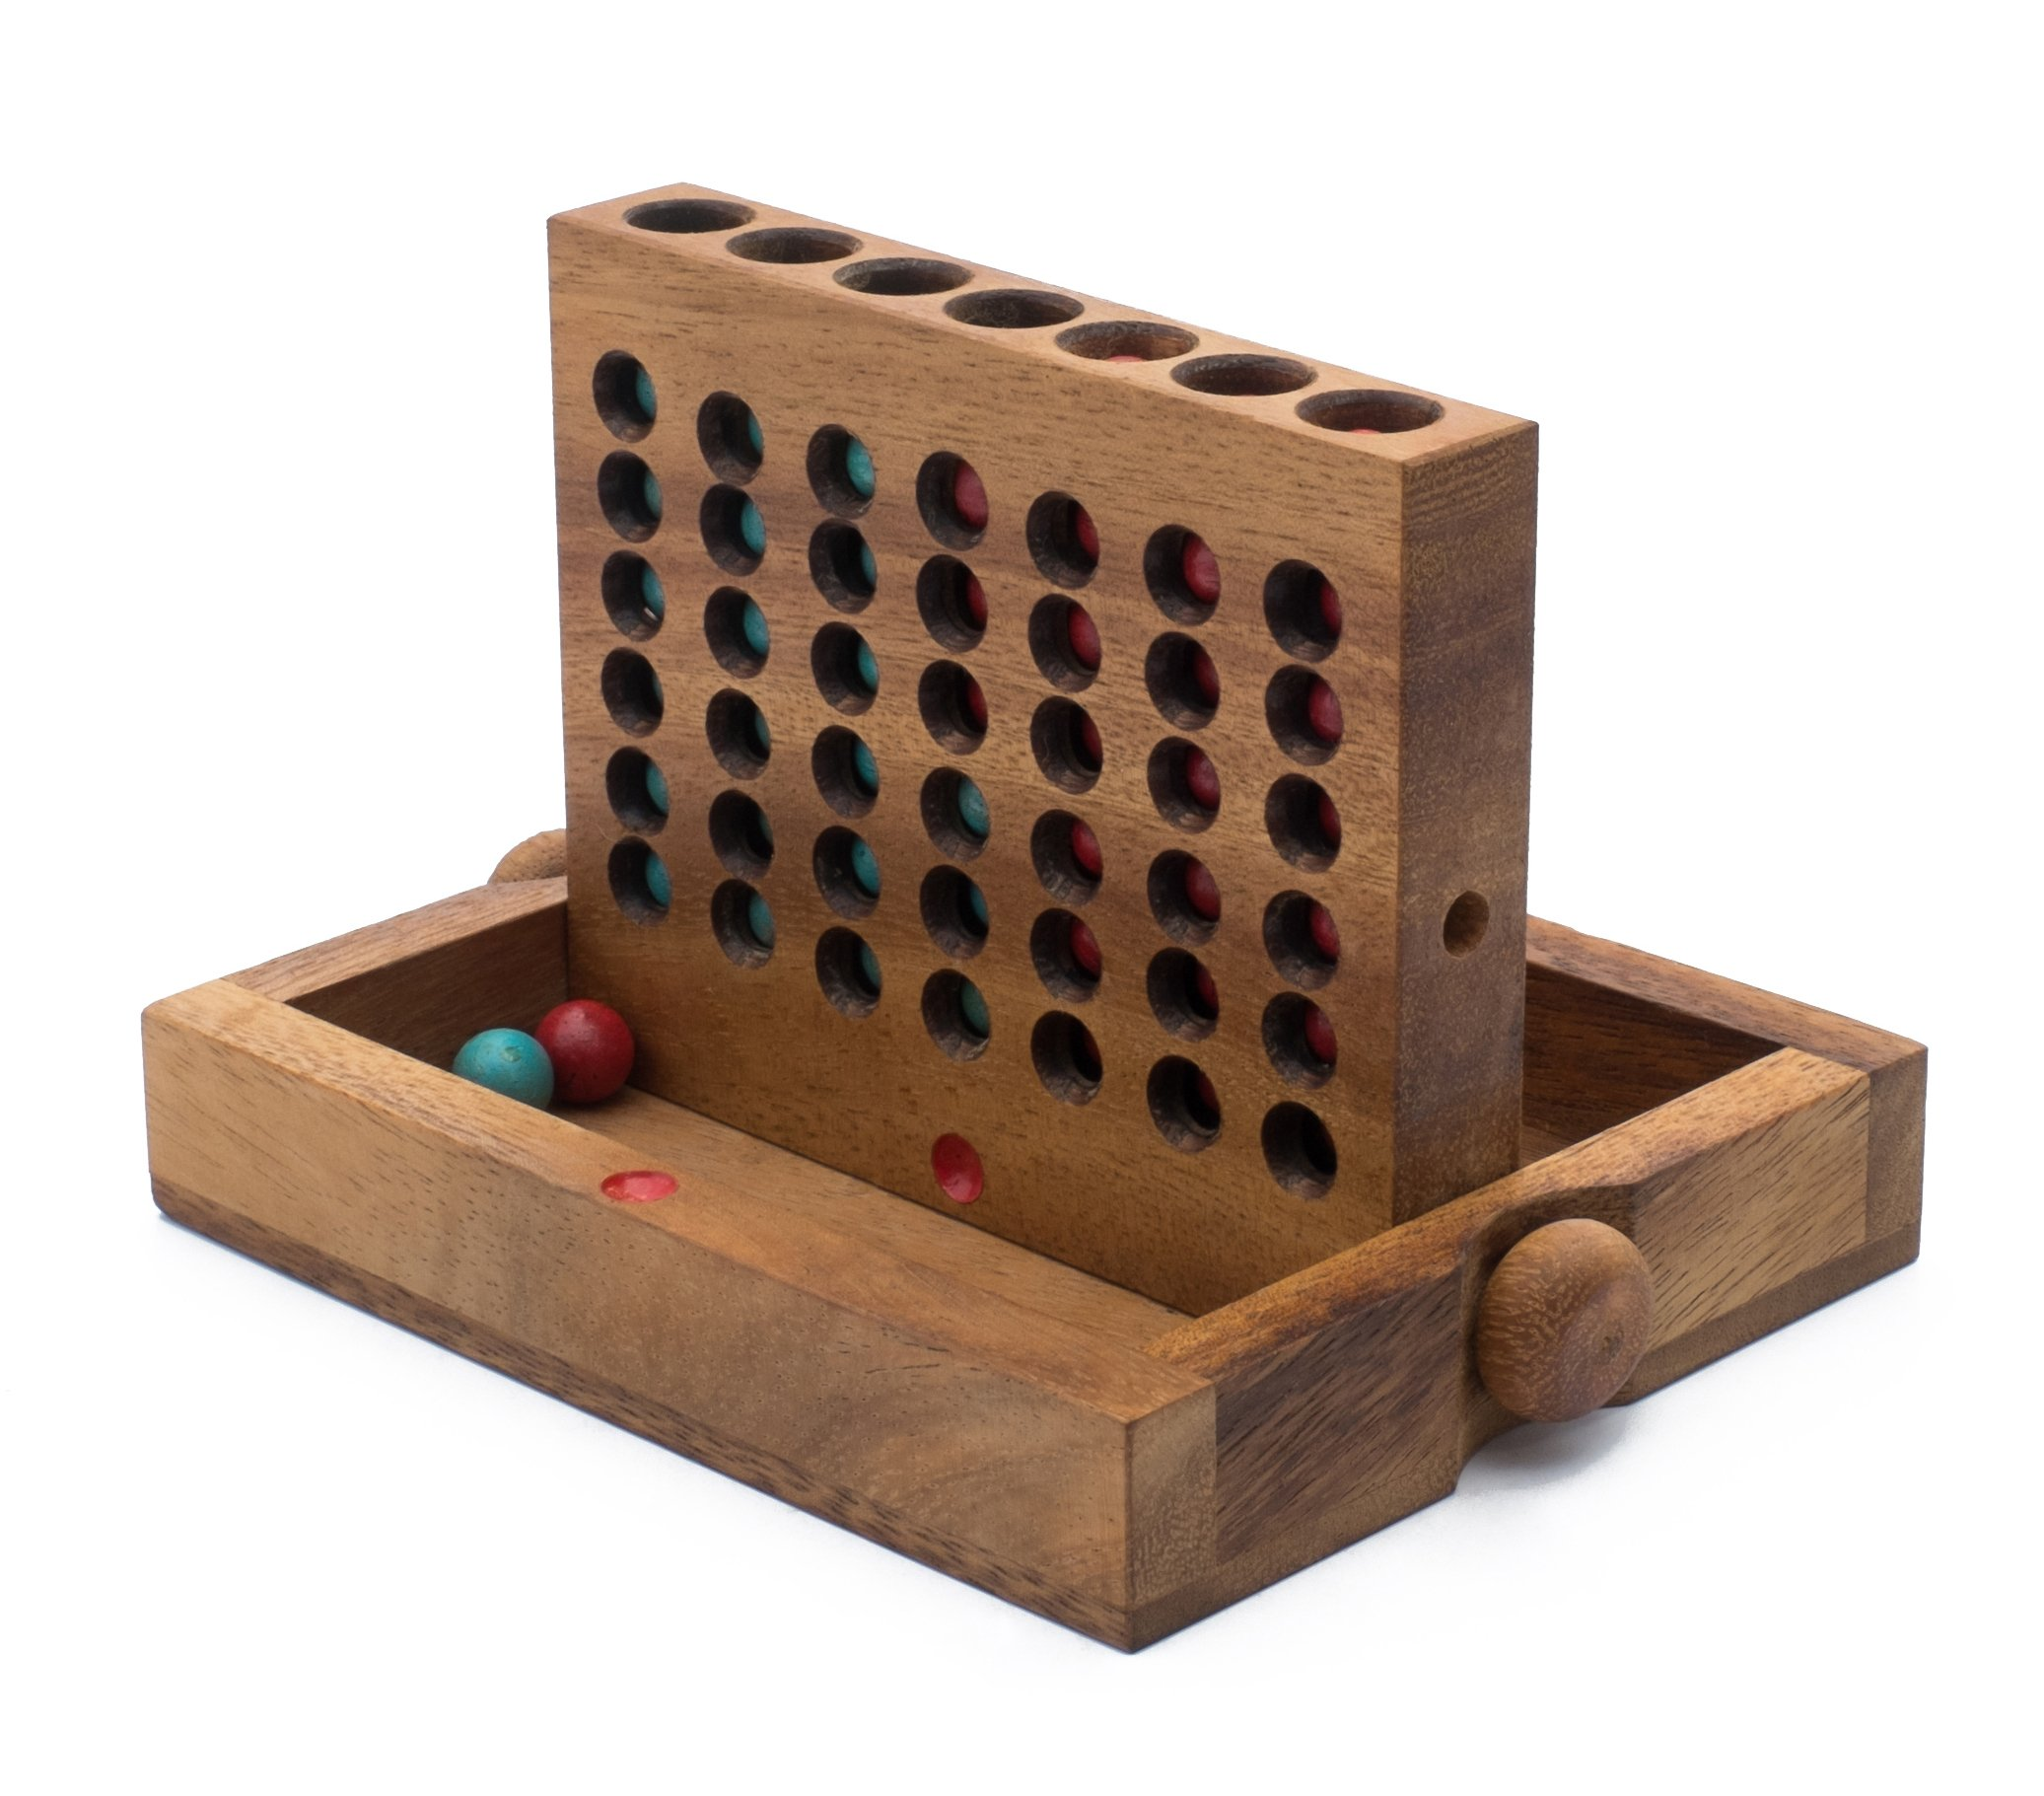 Penthouse Apartments: Handmade & Organic Traditional Wooden Game for Adults from SiamMandalay with SM Gift Box(Pictured)